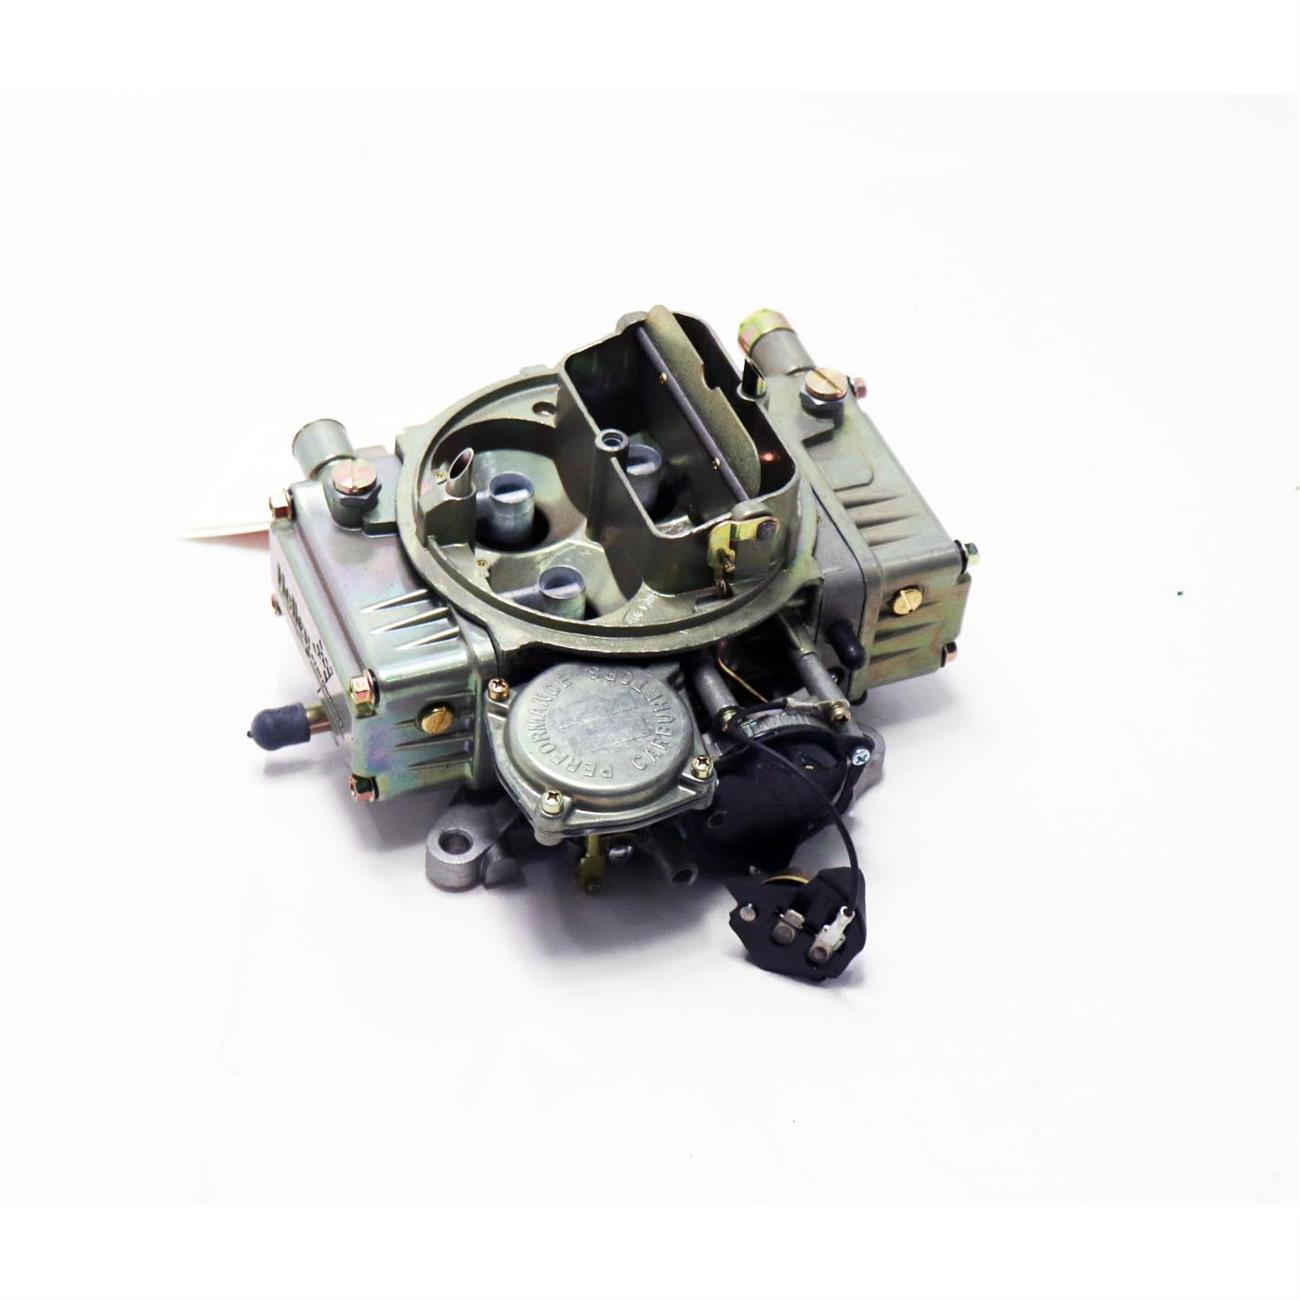 Holley 0-1848-1 465 CFM Classic Holley Carburetor